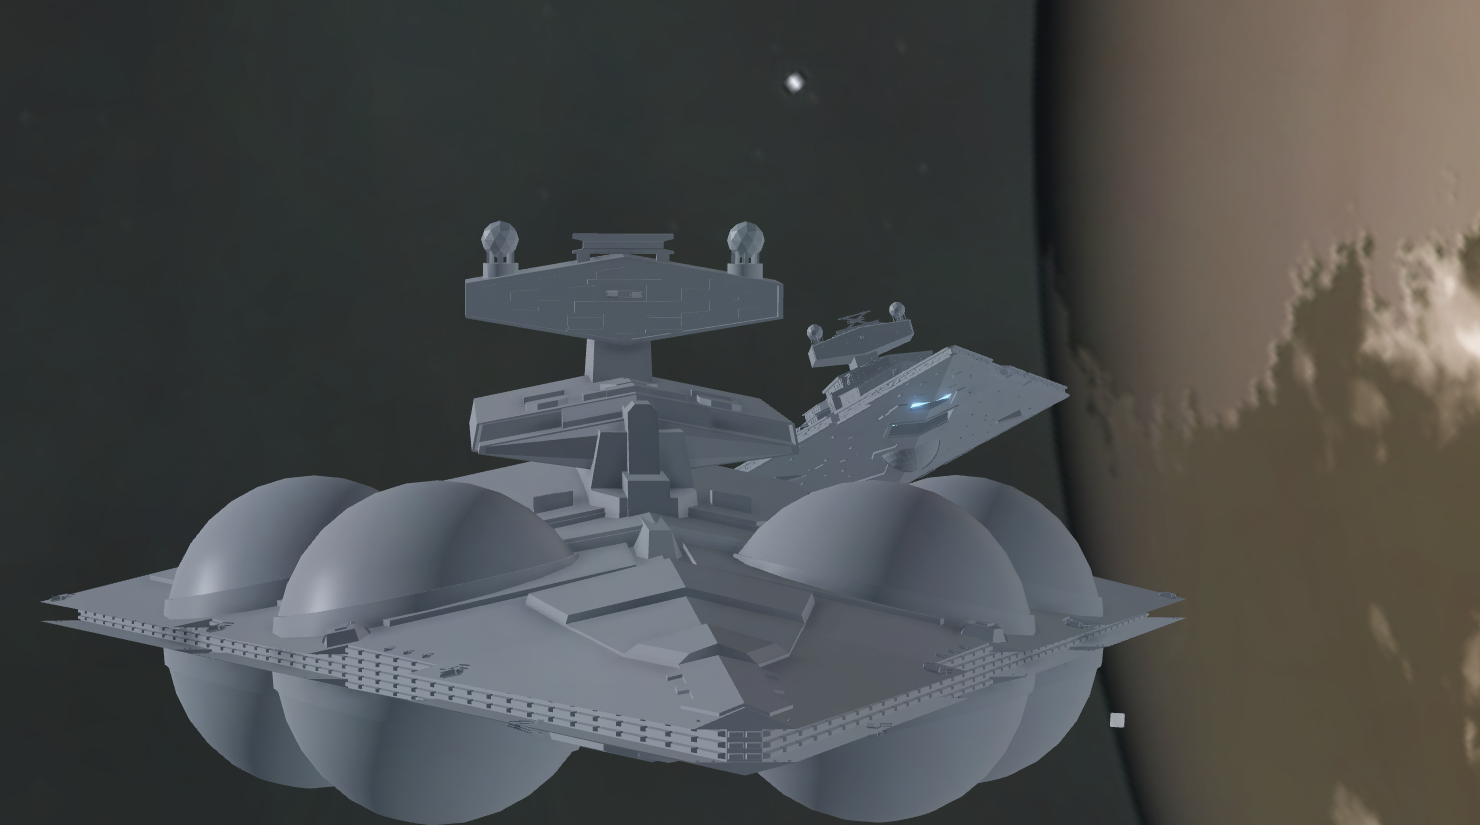 Providence Class Dreadnought Invisible Hand Project Stardust Roblox Wiki Fandom Category Cis Navy Project Stardust Roblox Wiki Fandom